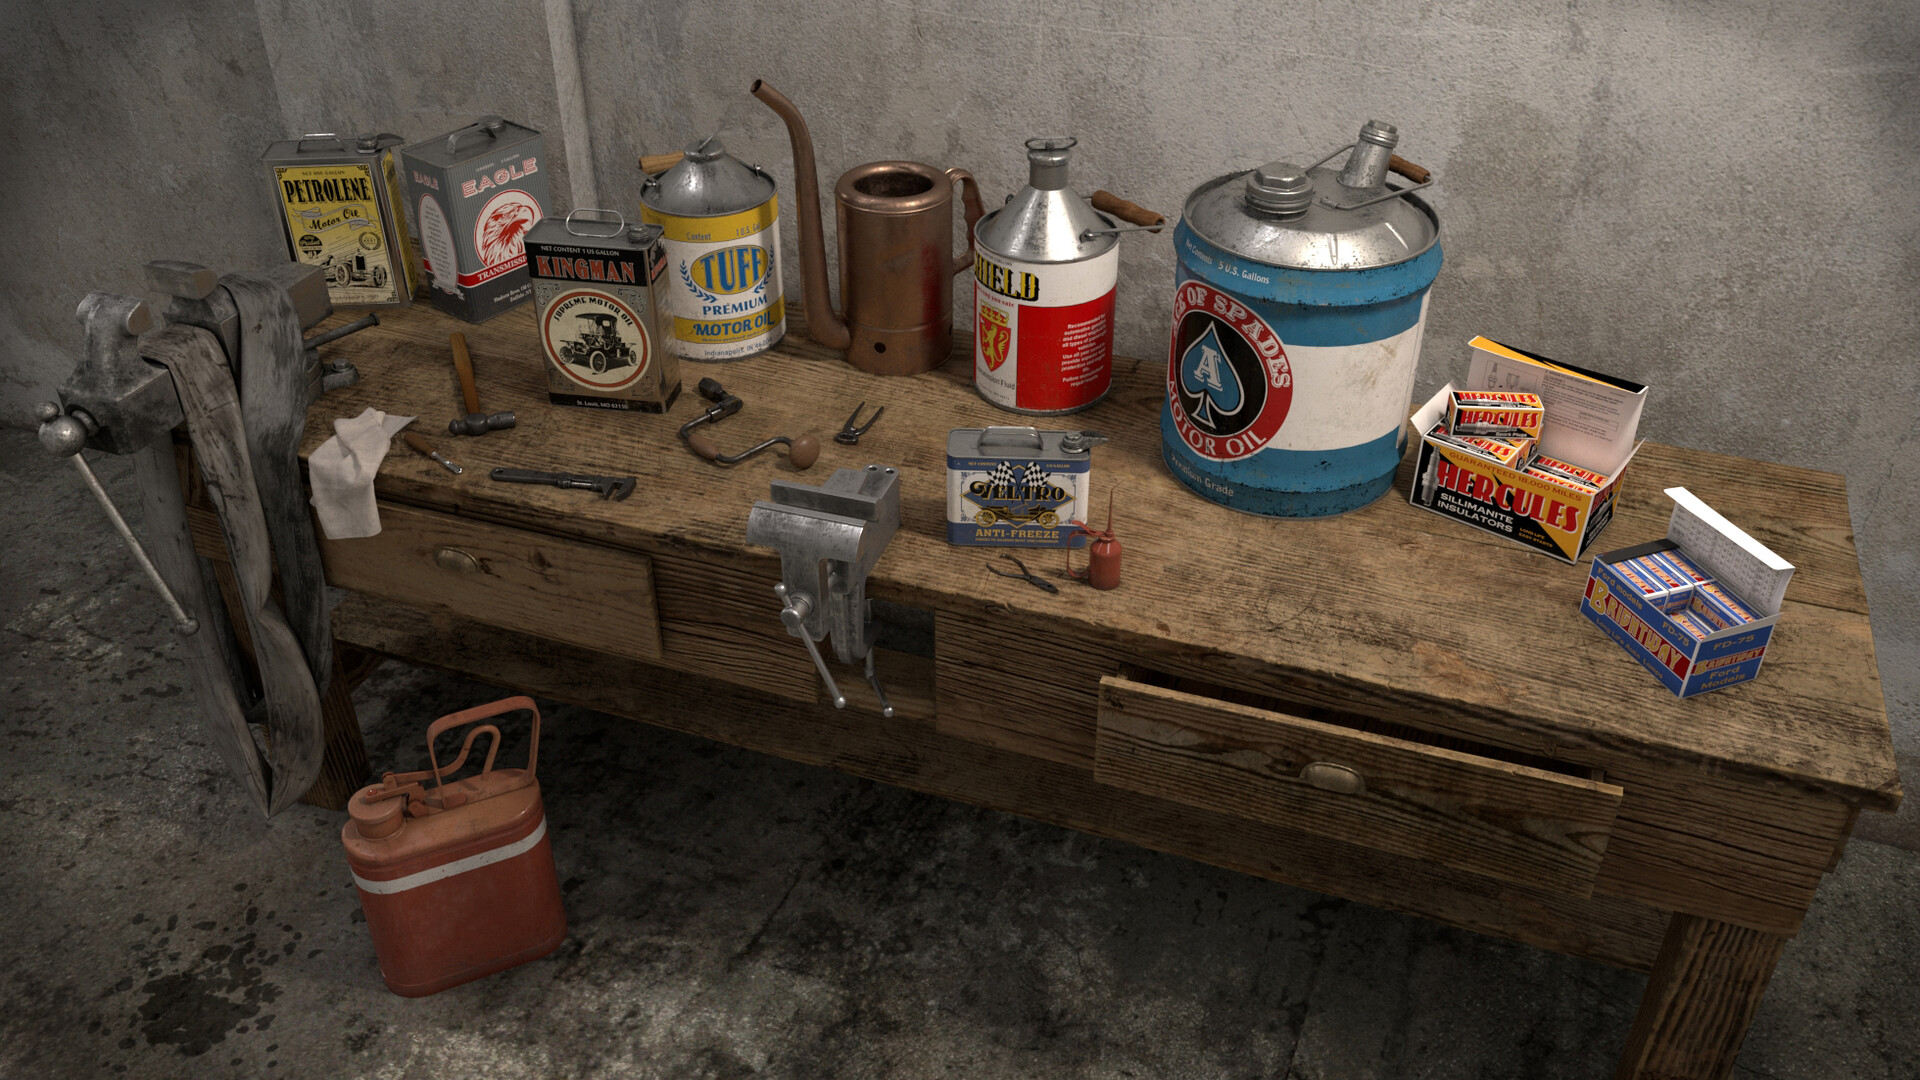 Few items modeled for the background